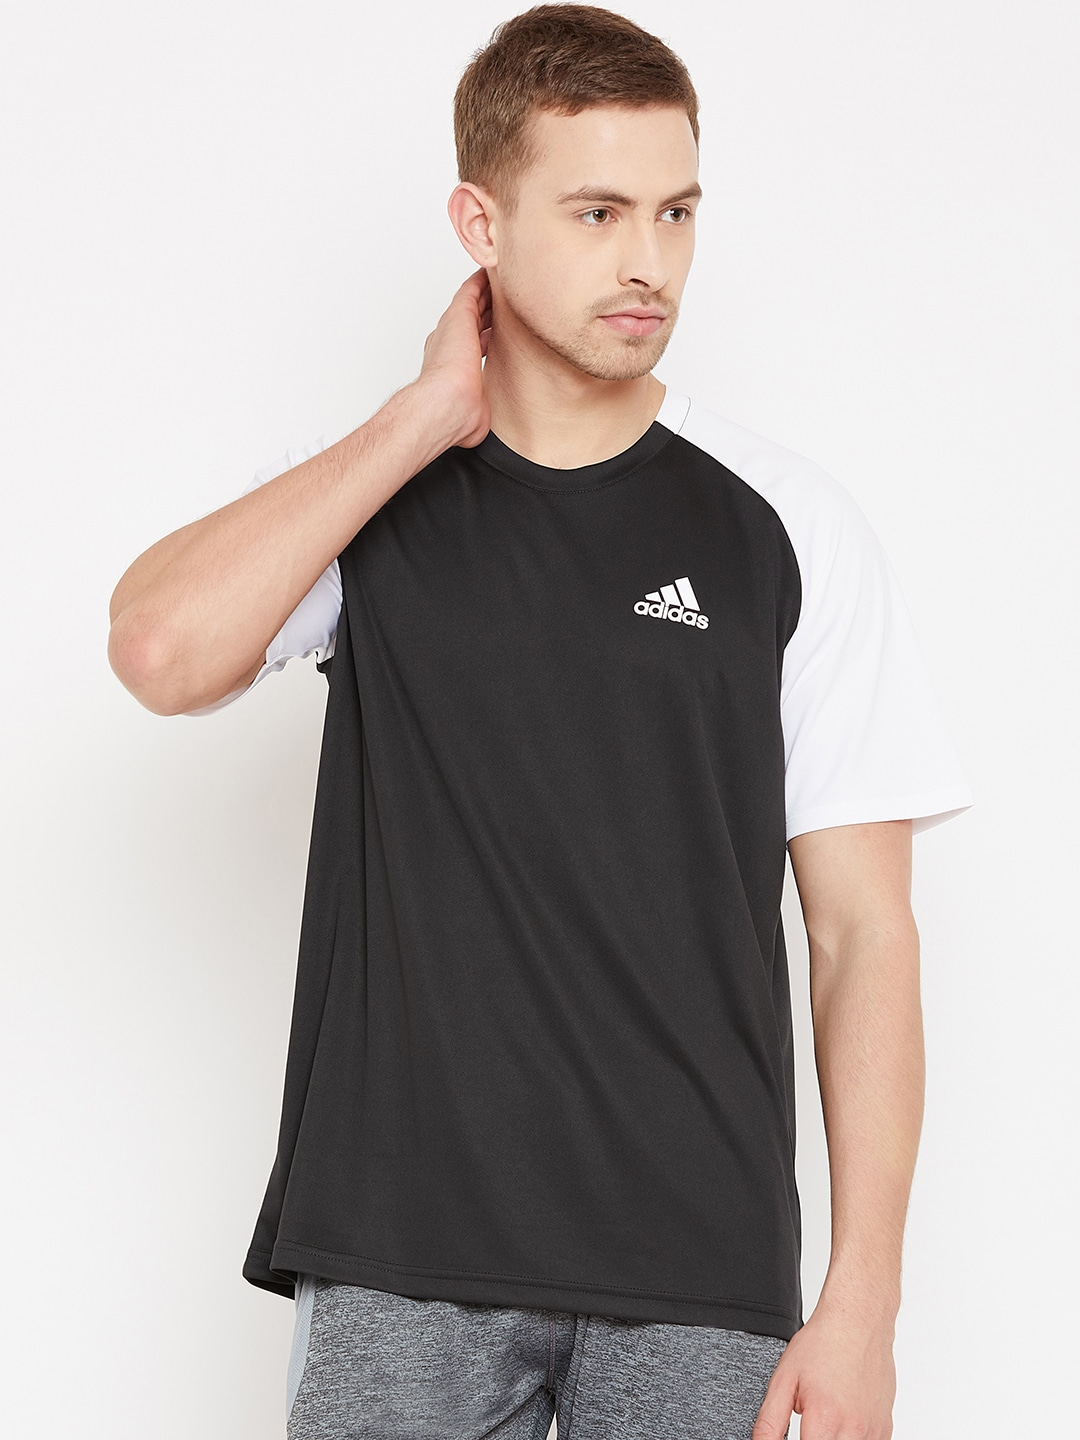 ee1f61adf Adidas Performax - Buy Adidas Performax online in India